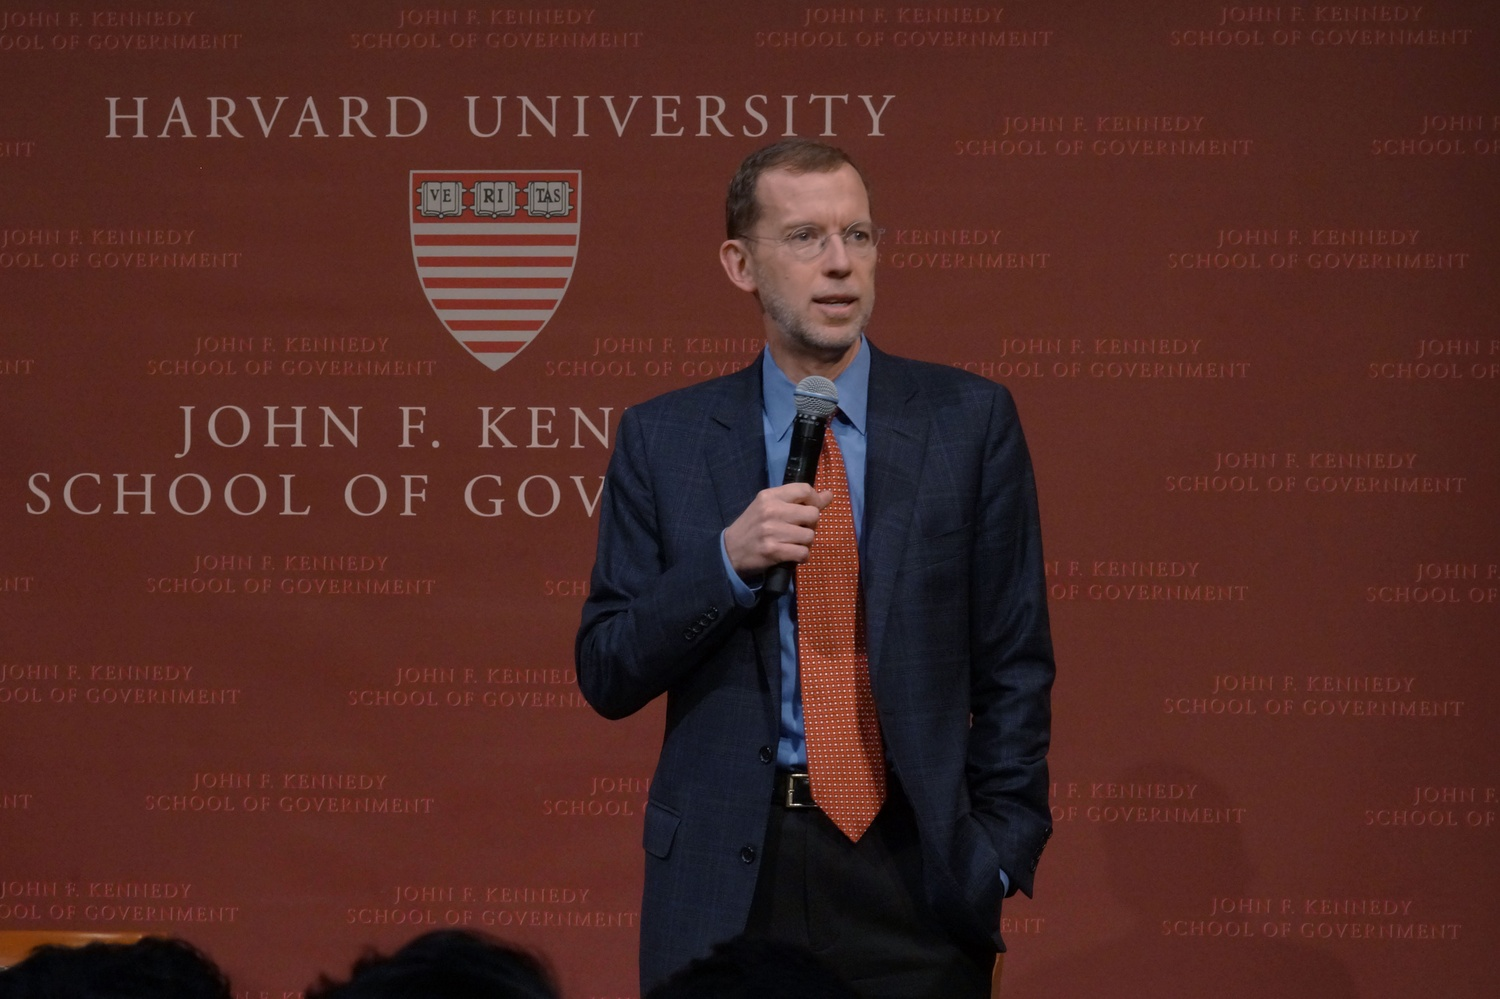 Douglas W. Elmendorf, Dean of the Harvard Kennedy School, announces that CIA Director Mike Pompeo has backed out of an Institute of Politics event to protest the HKS fellowship of Chelsea Manning.